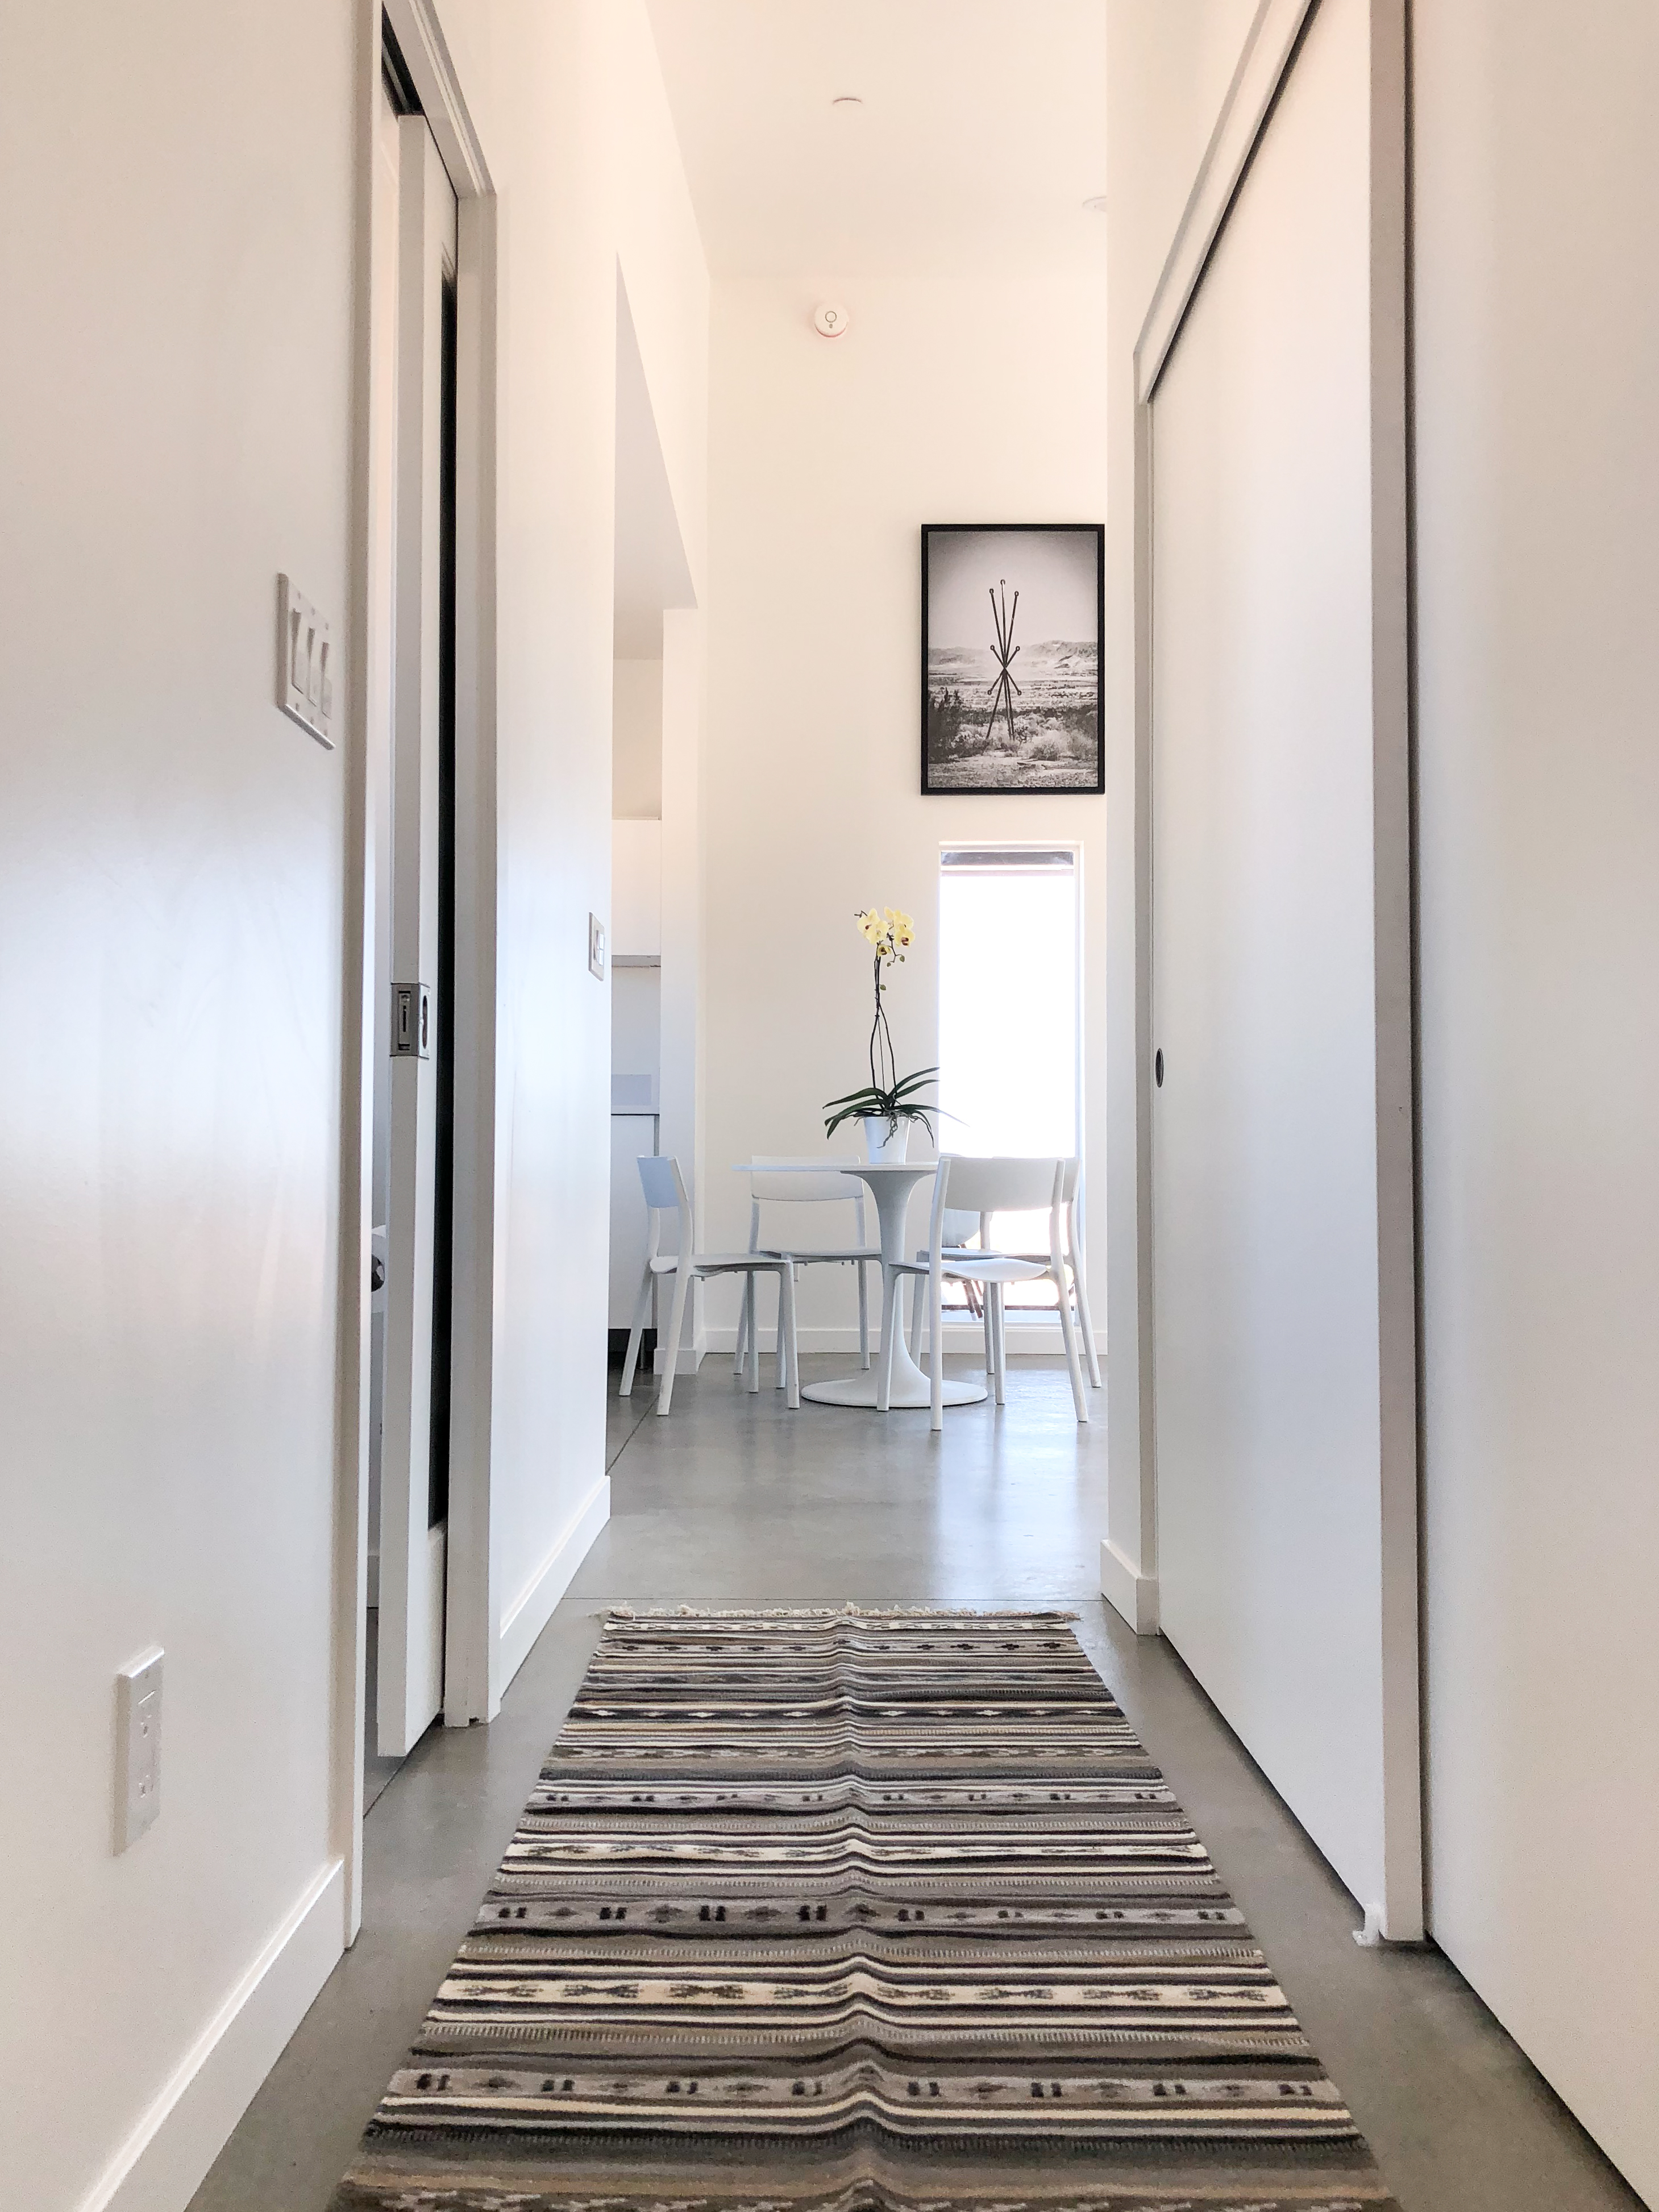 RENT JT1 ON AIRBNB